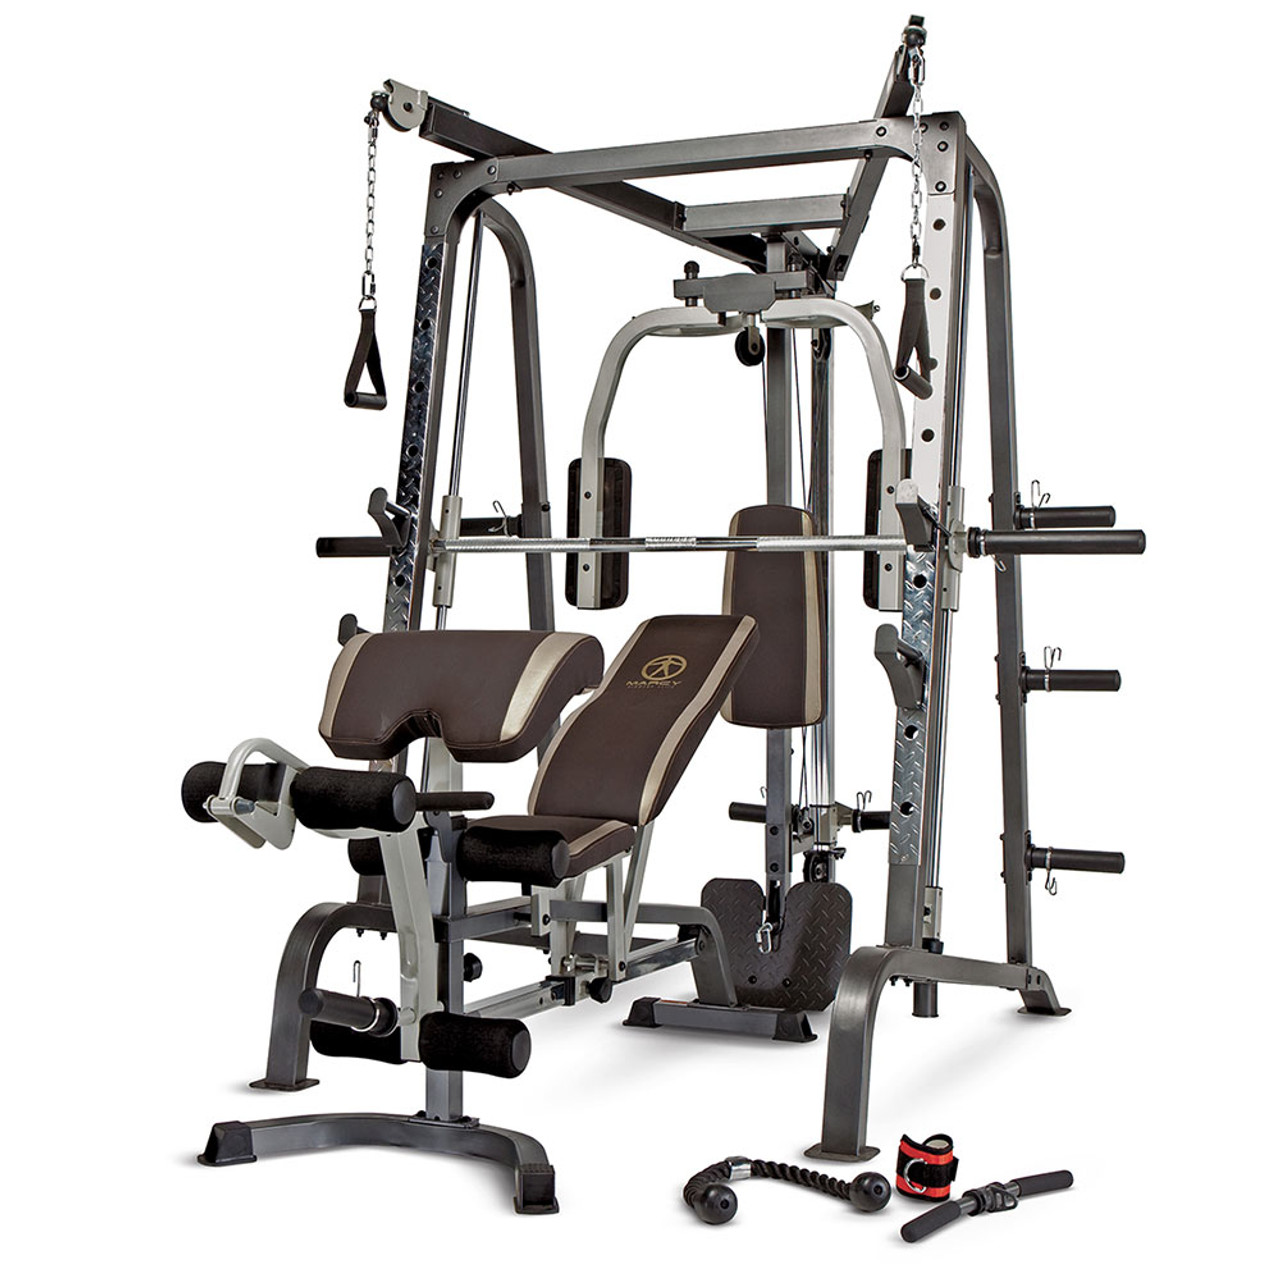 Home Exercise Equipment Price: The Best Quality Brand Smith Machine Home Gym MD-9010G